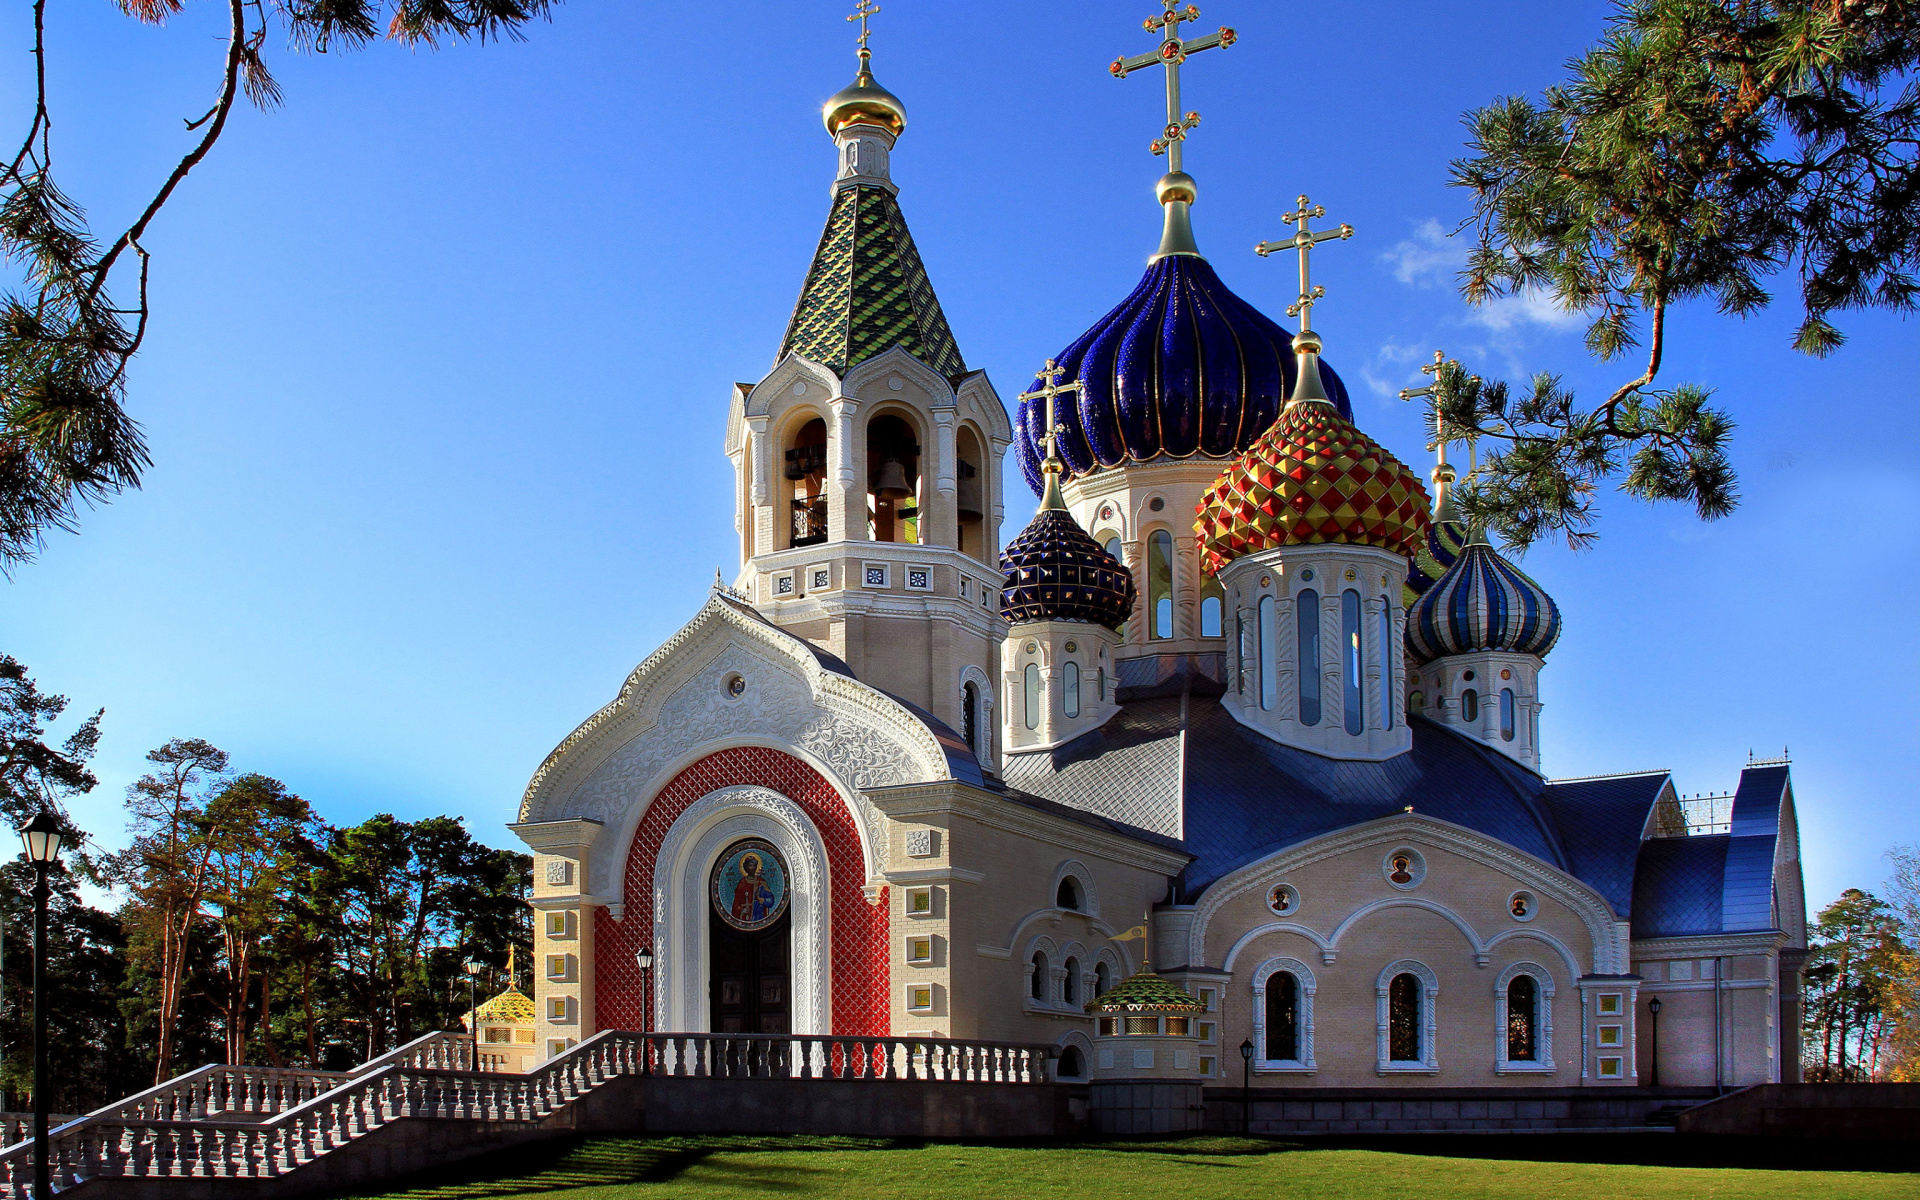 Church In Russia Hd Wallpaper Background Image 1920x1200 Id